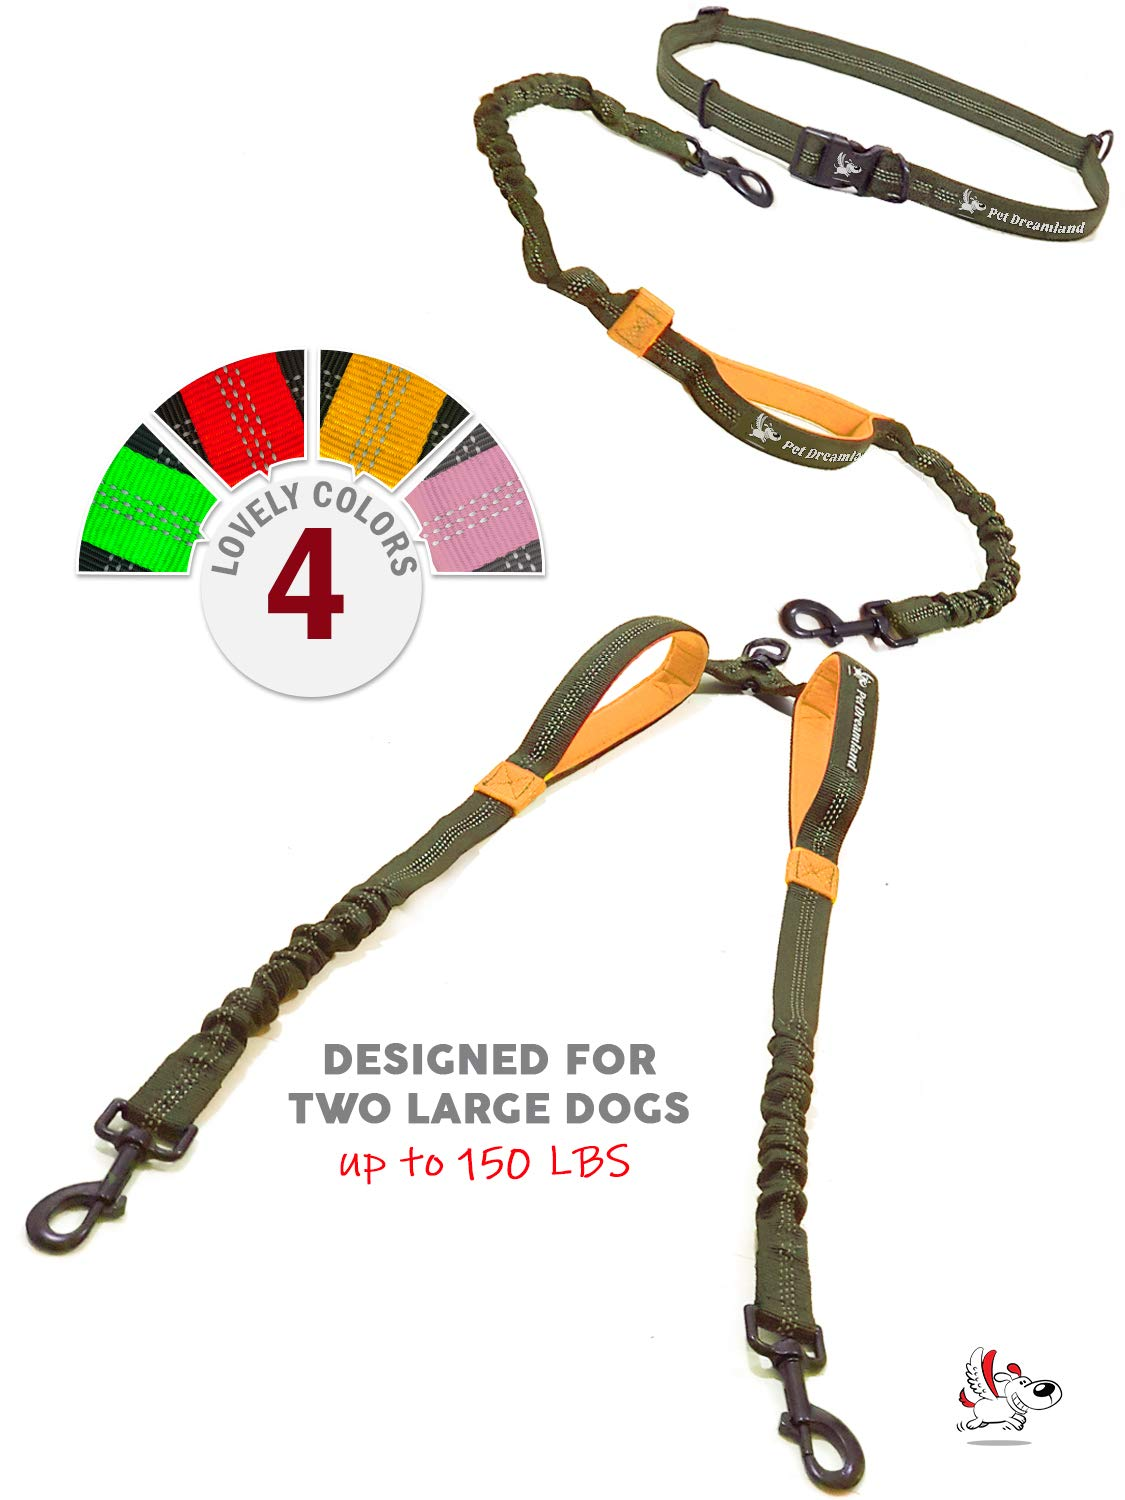 Pet Dreamland Double Leash Hands Free - Two Dogs Coupler Complete Set - No Tangle, No Pull Tandem Dual Bungee Lead (Khaki & Orange) by Pet Dreamland